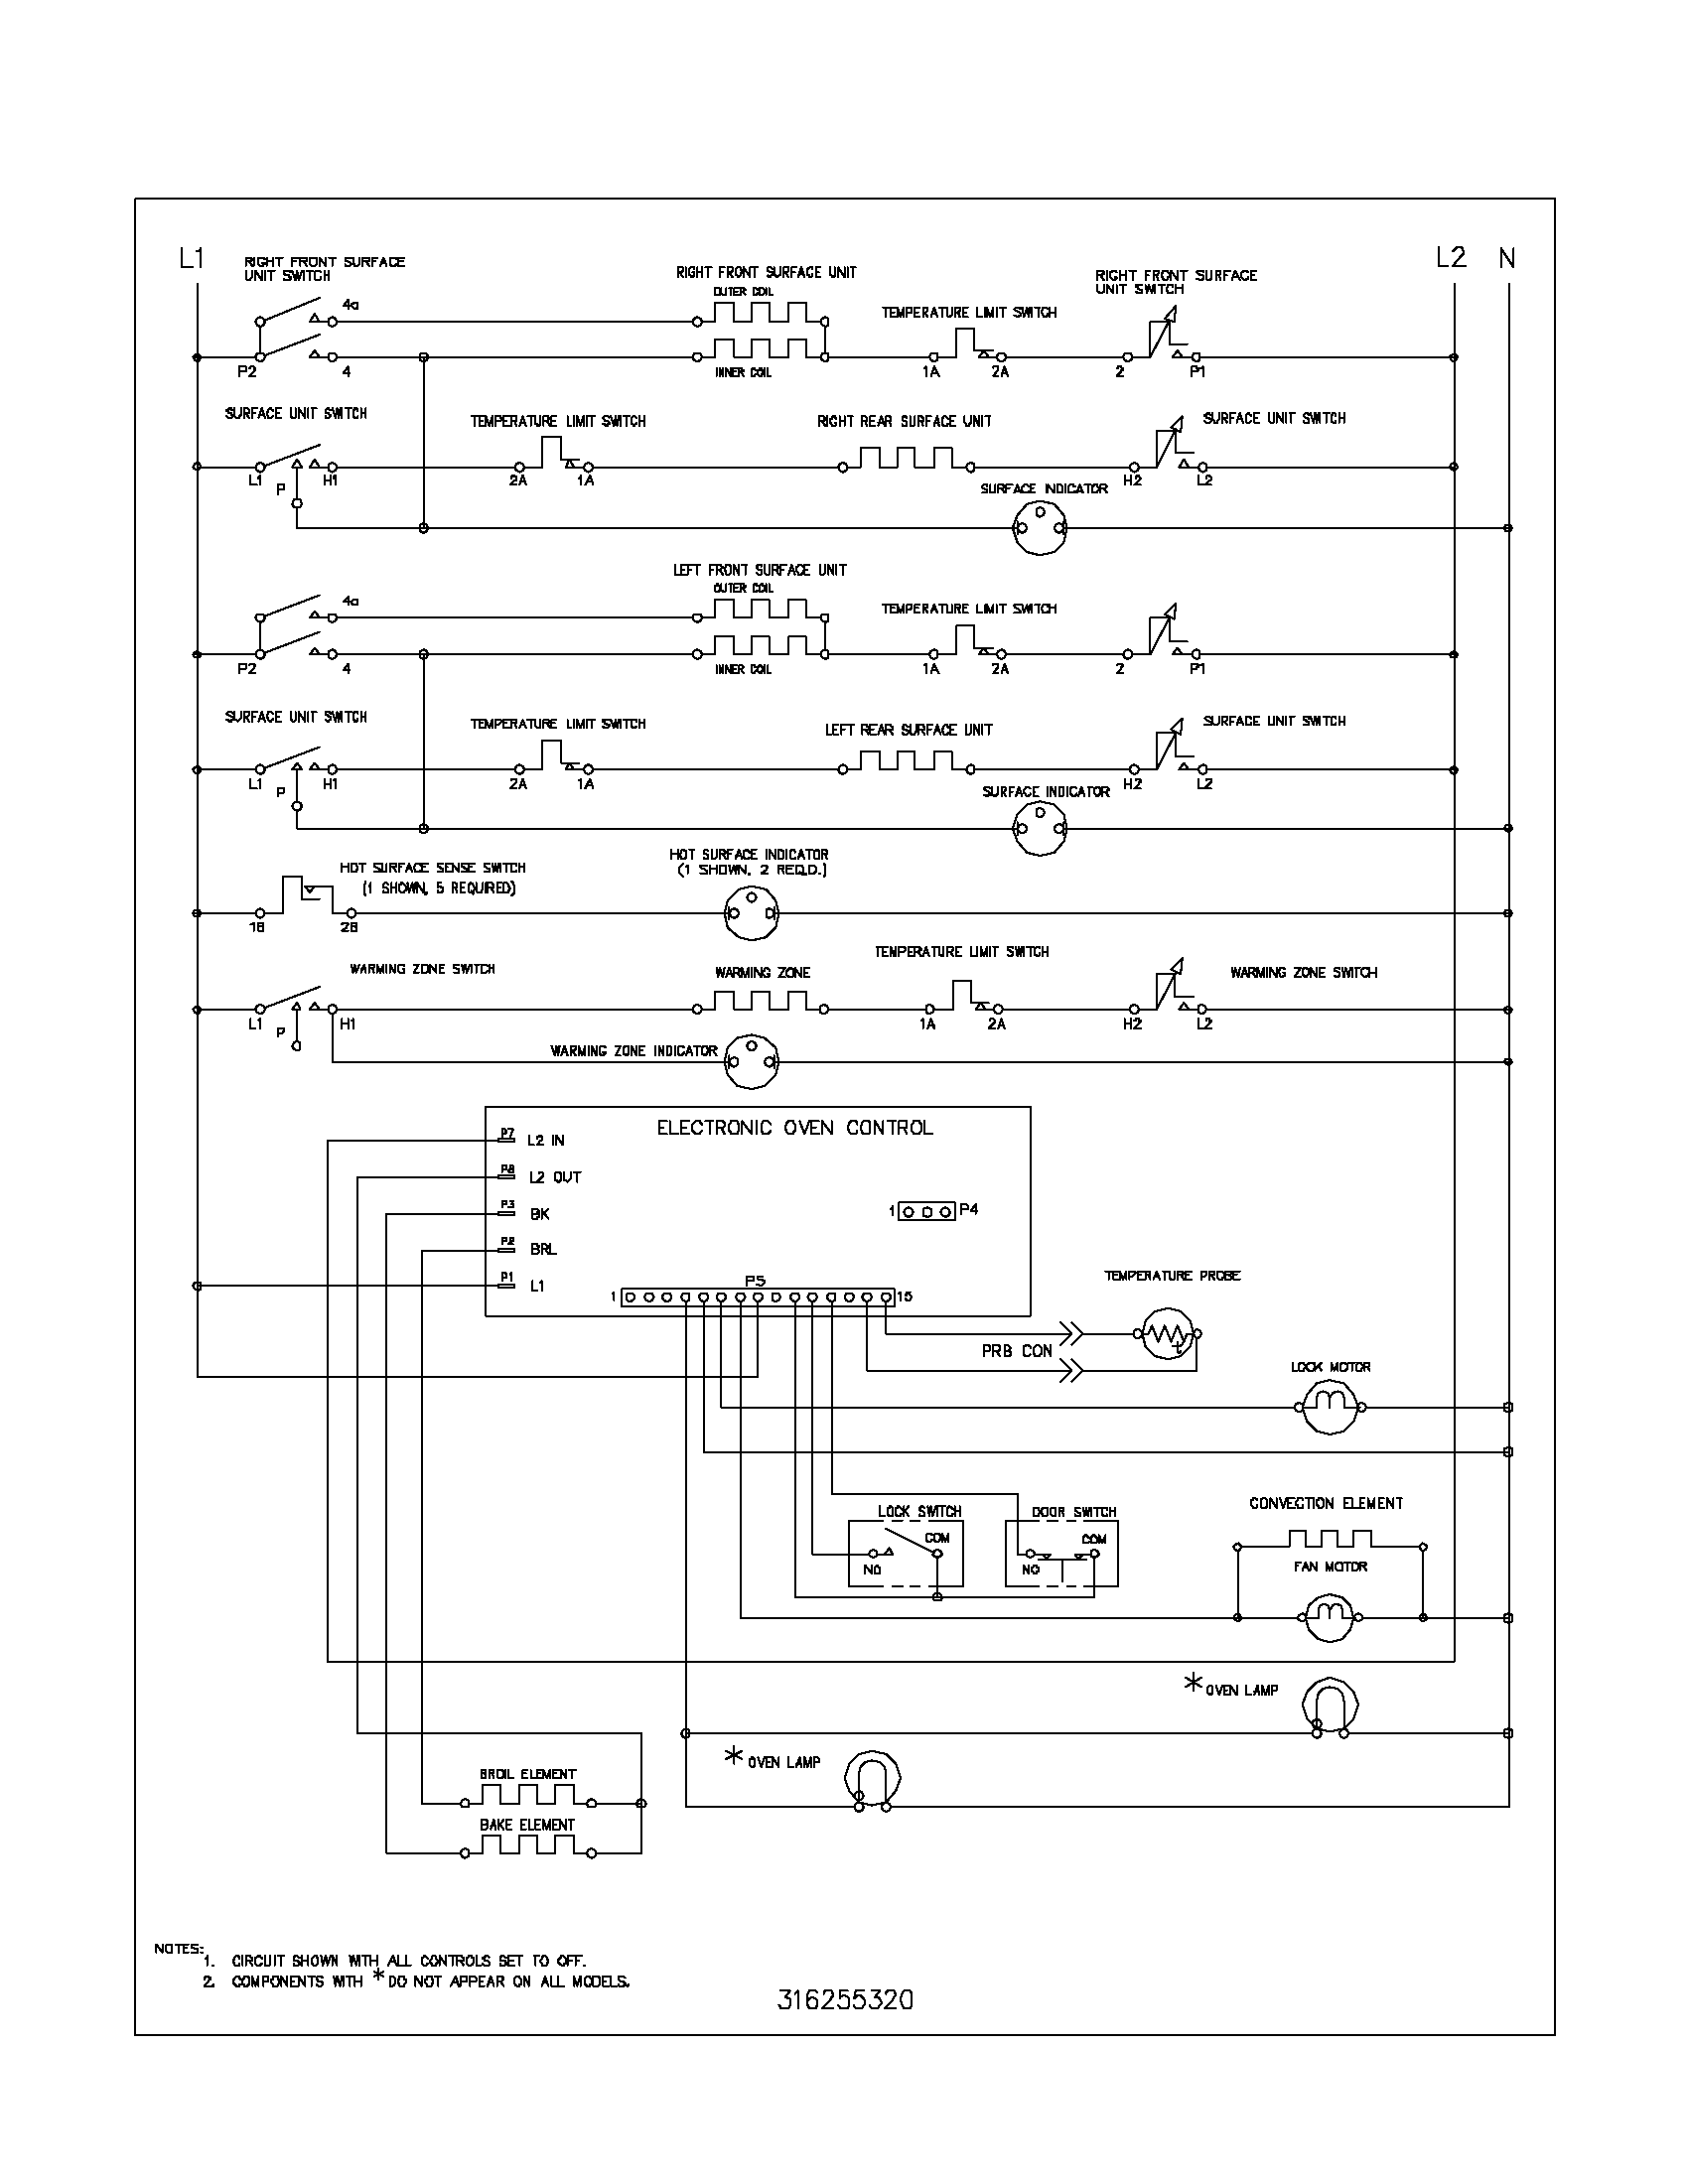 wiring schematic parts whirlpool fefl88acc electric range timer stove clocks and hotpoint oven bake element wiring diagram at soozxer.org